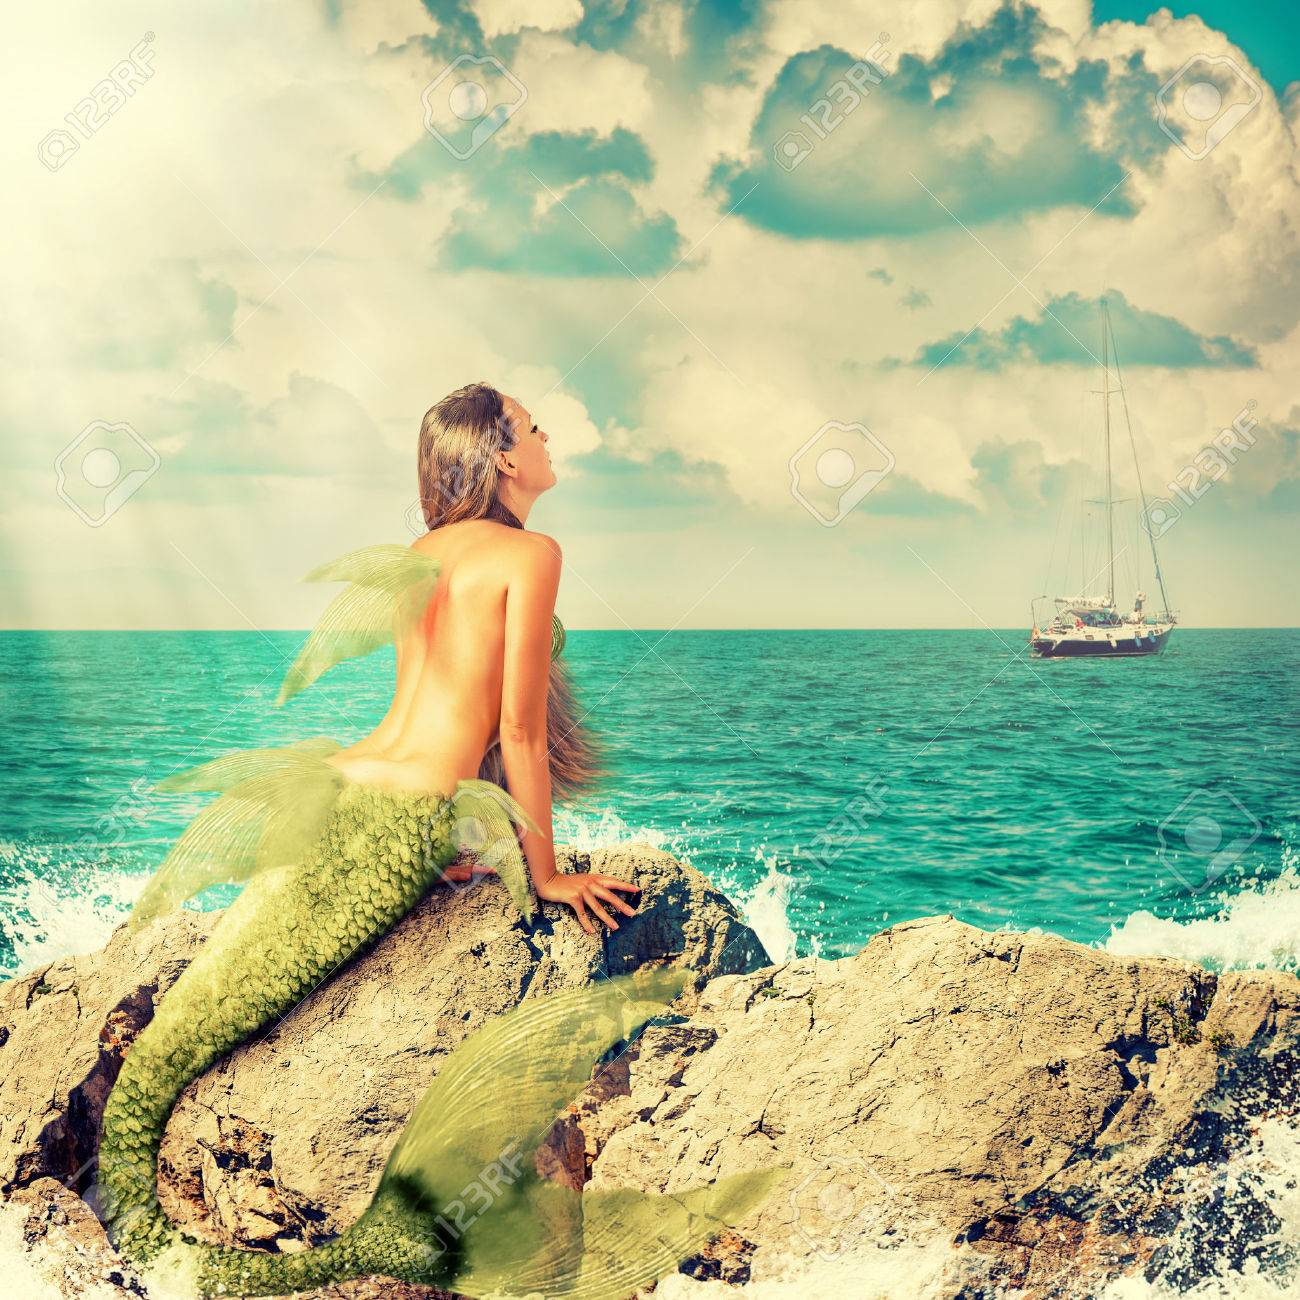 Beautiful Mermaid with fish tail sitting on rocks and looks at a ship on the horizon Stock Photo - 40818223